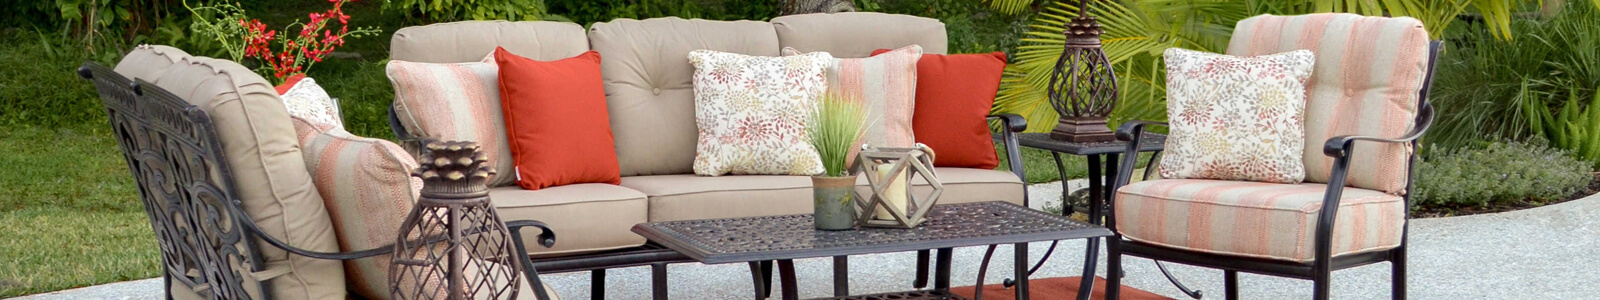 Palm Springs Rattan Furniture Sale Banner